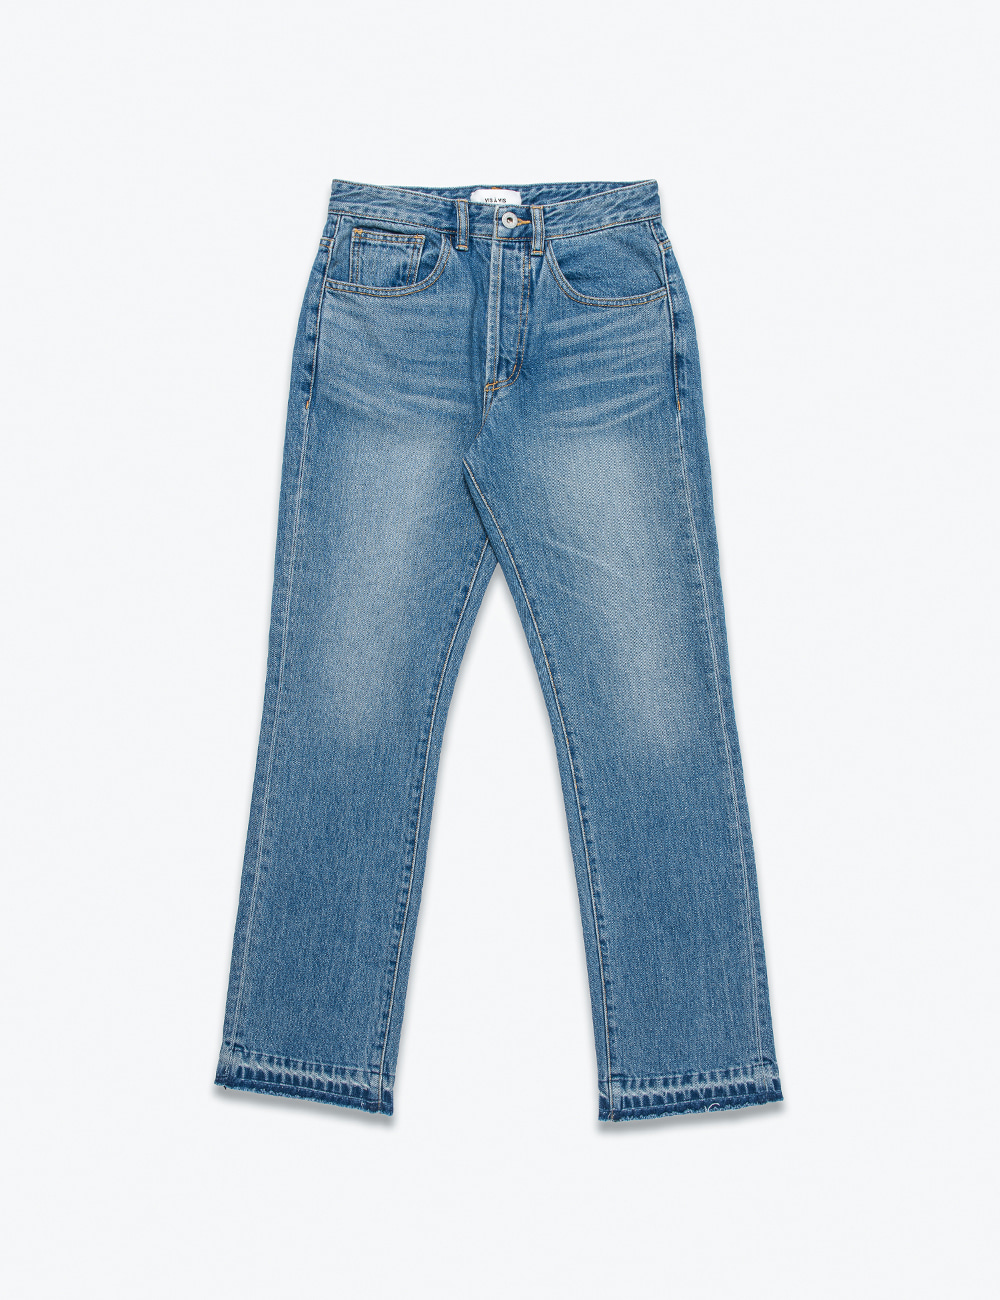 KICK FLARE MINIMALIST DENIM JEANS (WASHED BLUE)